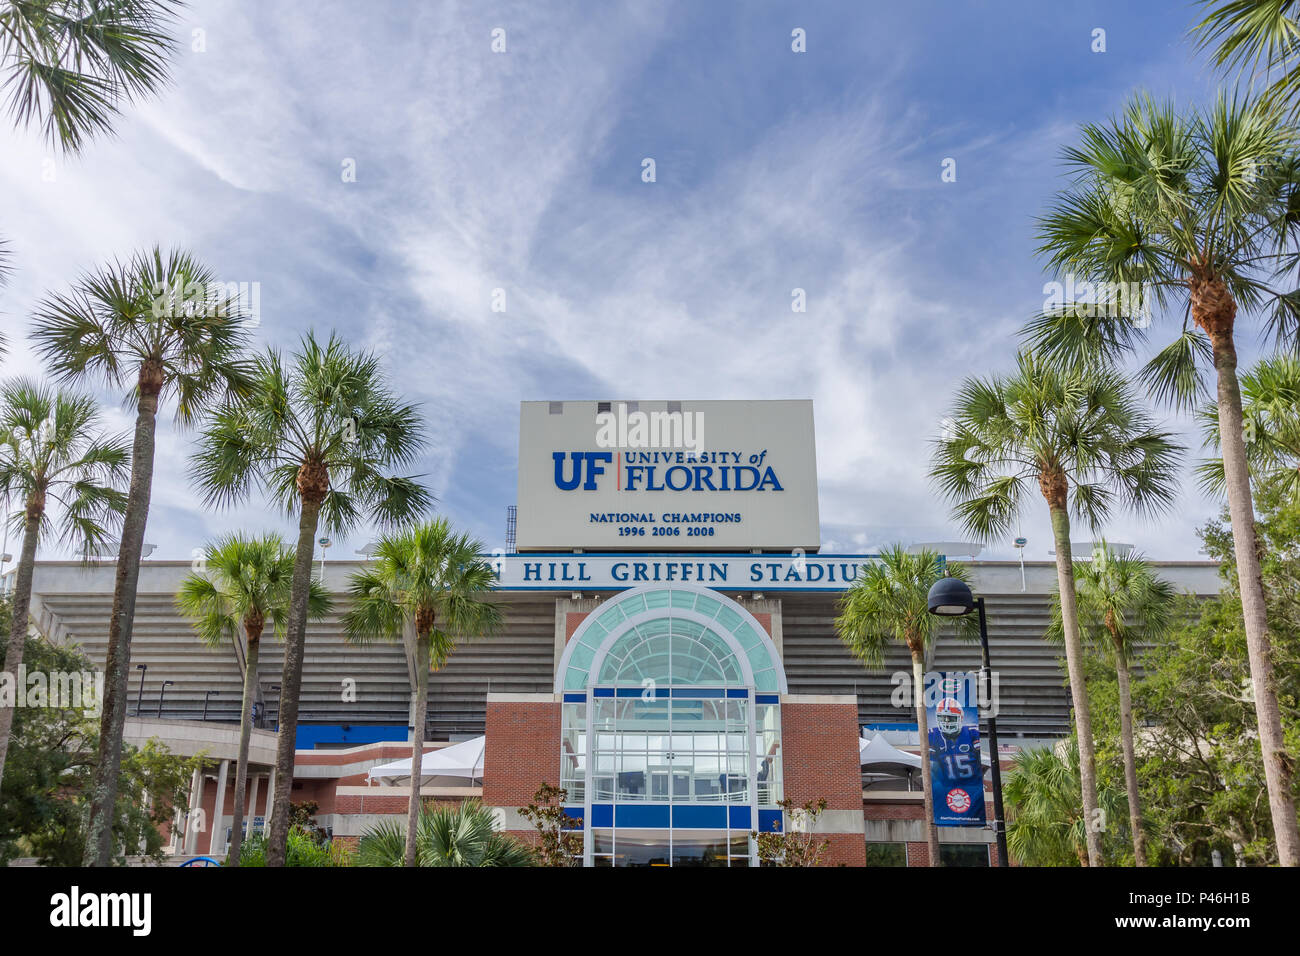 Steve Spurrier-Florida Field at Ben Hill Griffin Stadium ('The Swamp') at the University of Florida on September 12, 2016 in Gainesville, Florida. - Stock Image